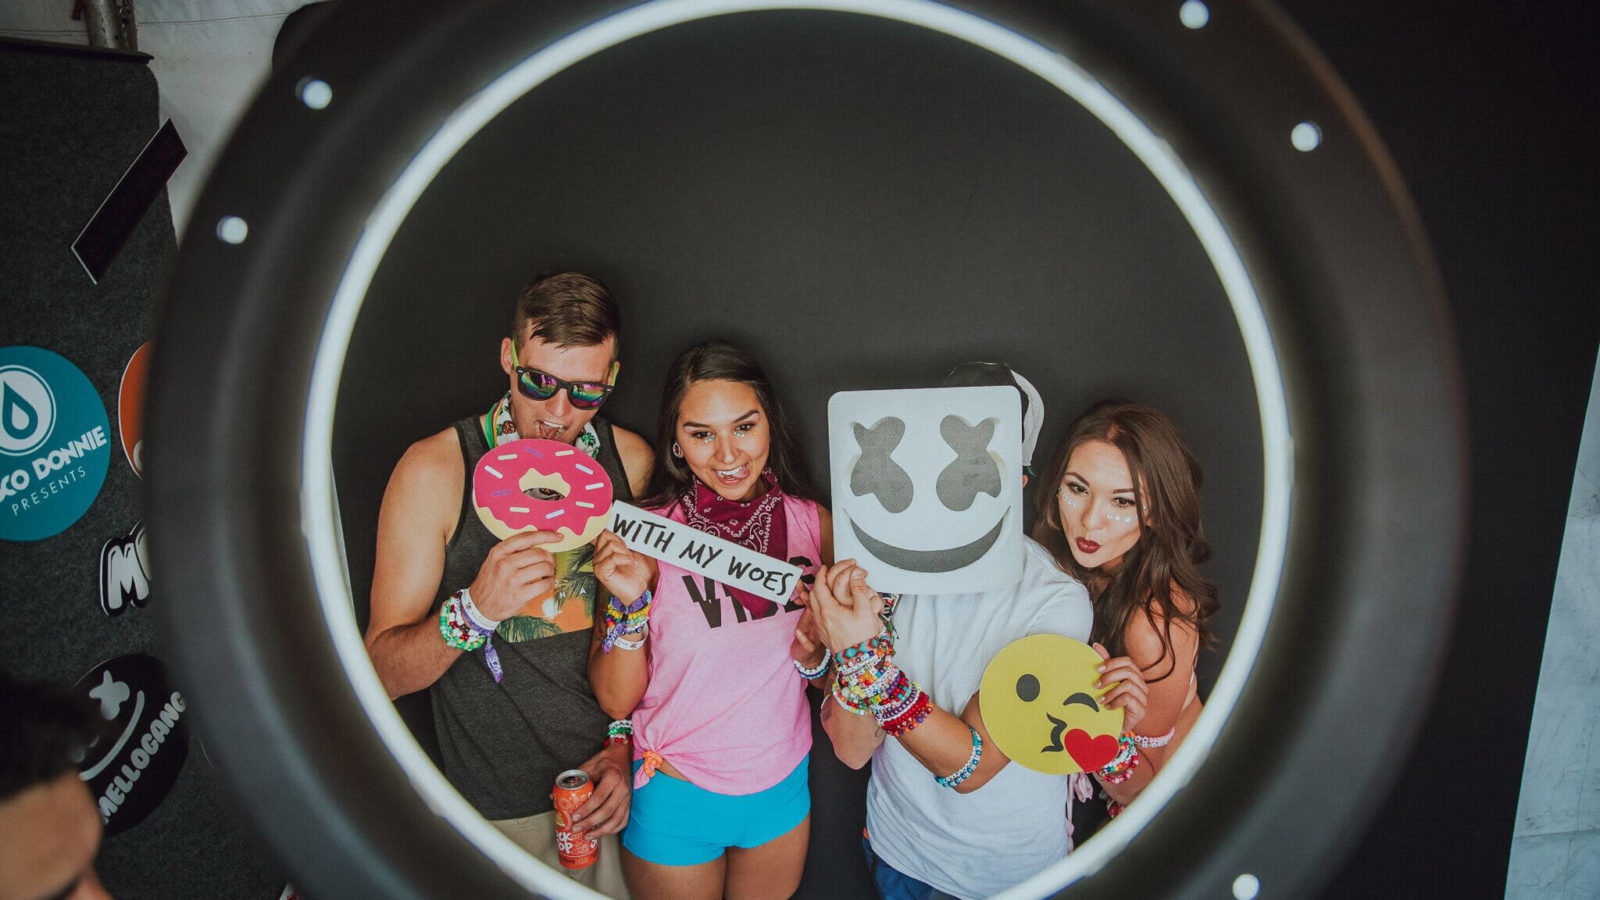 scmf fans in the photobooth